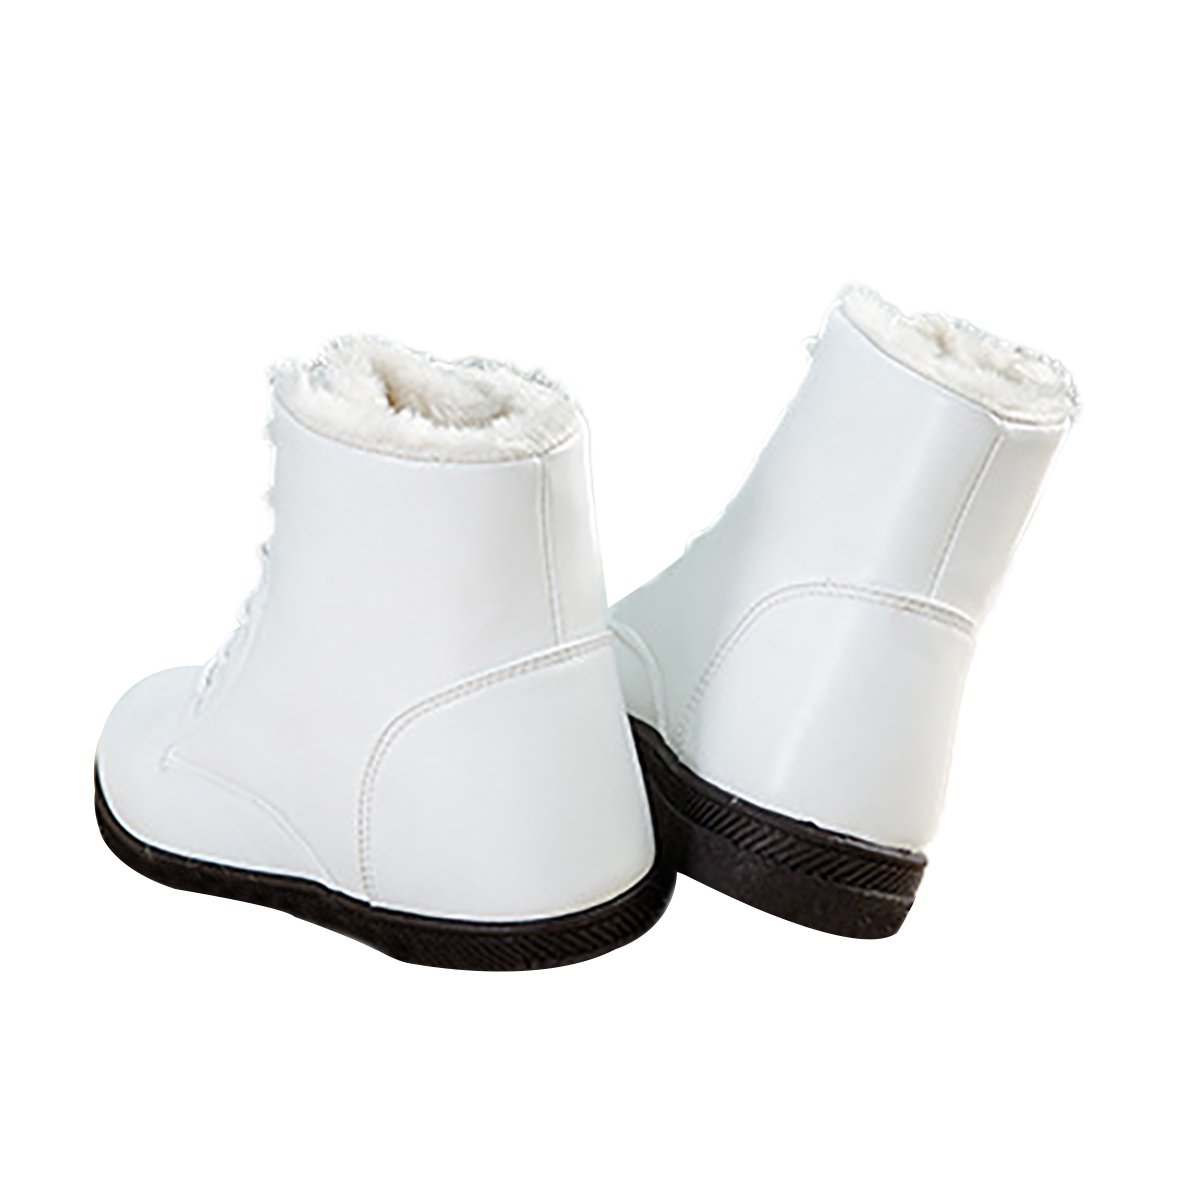 Inornever Waterproof Snow Boots for Women Platform Sneaker Shoes Winter Outdoor PU Leather Ankle Boots